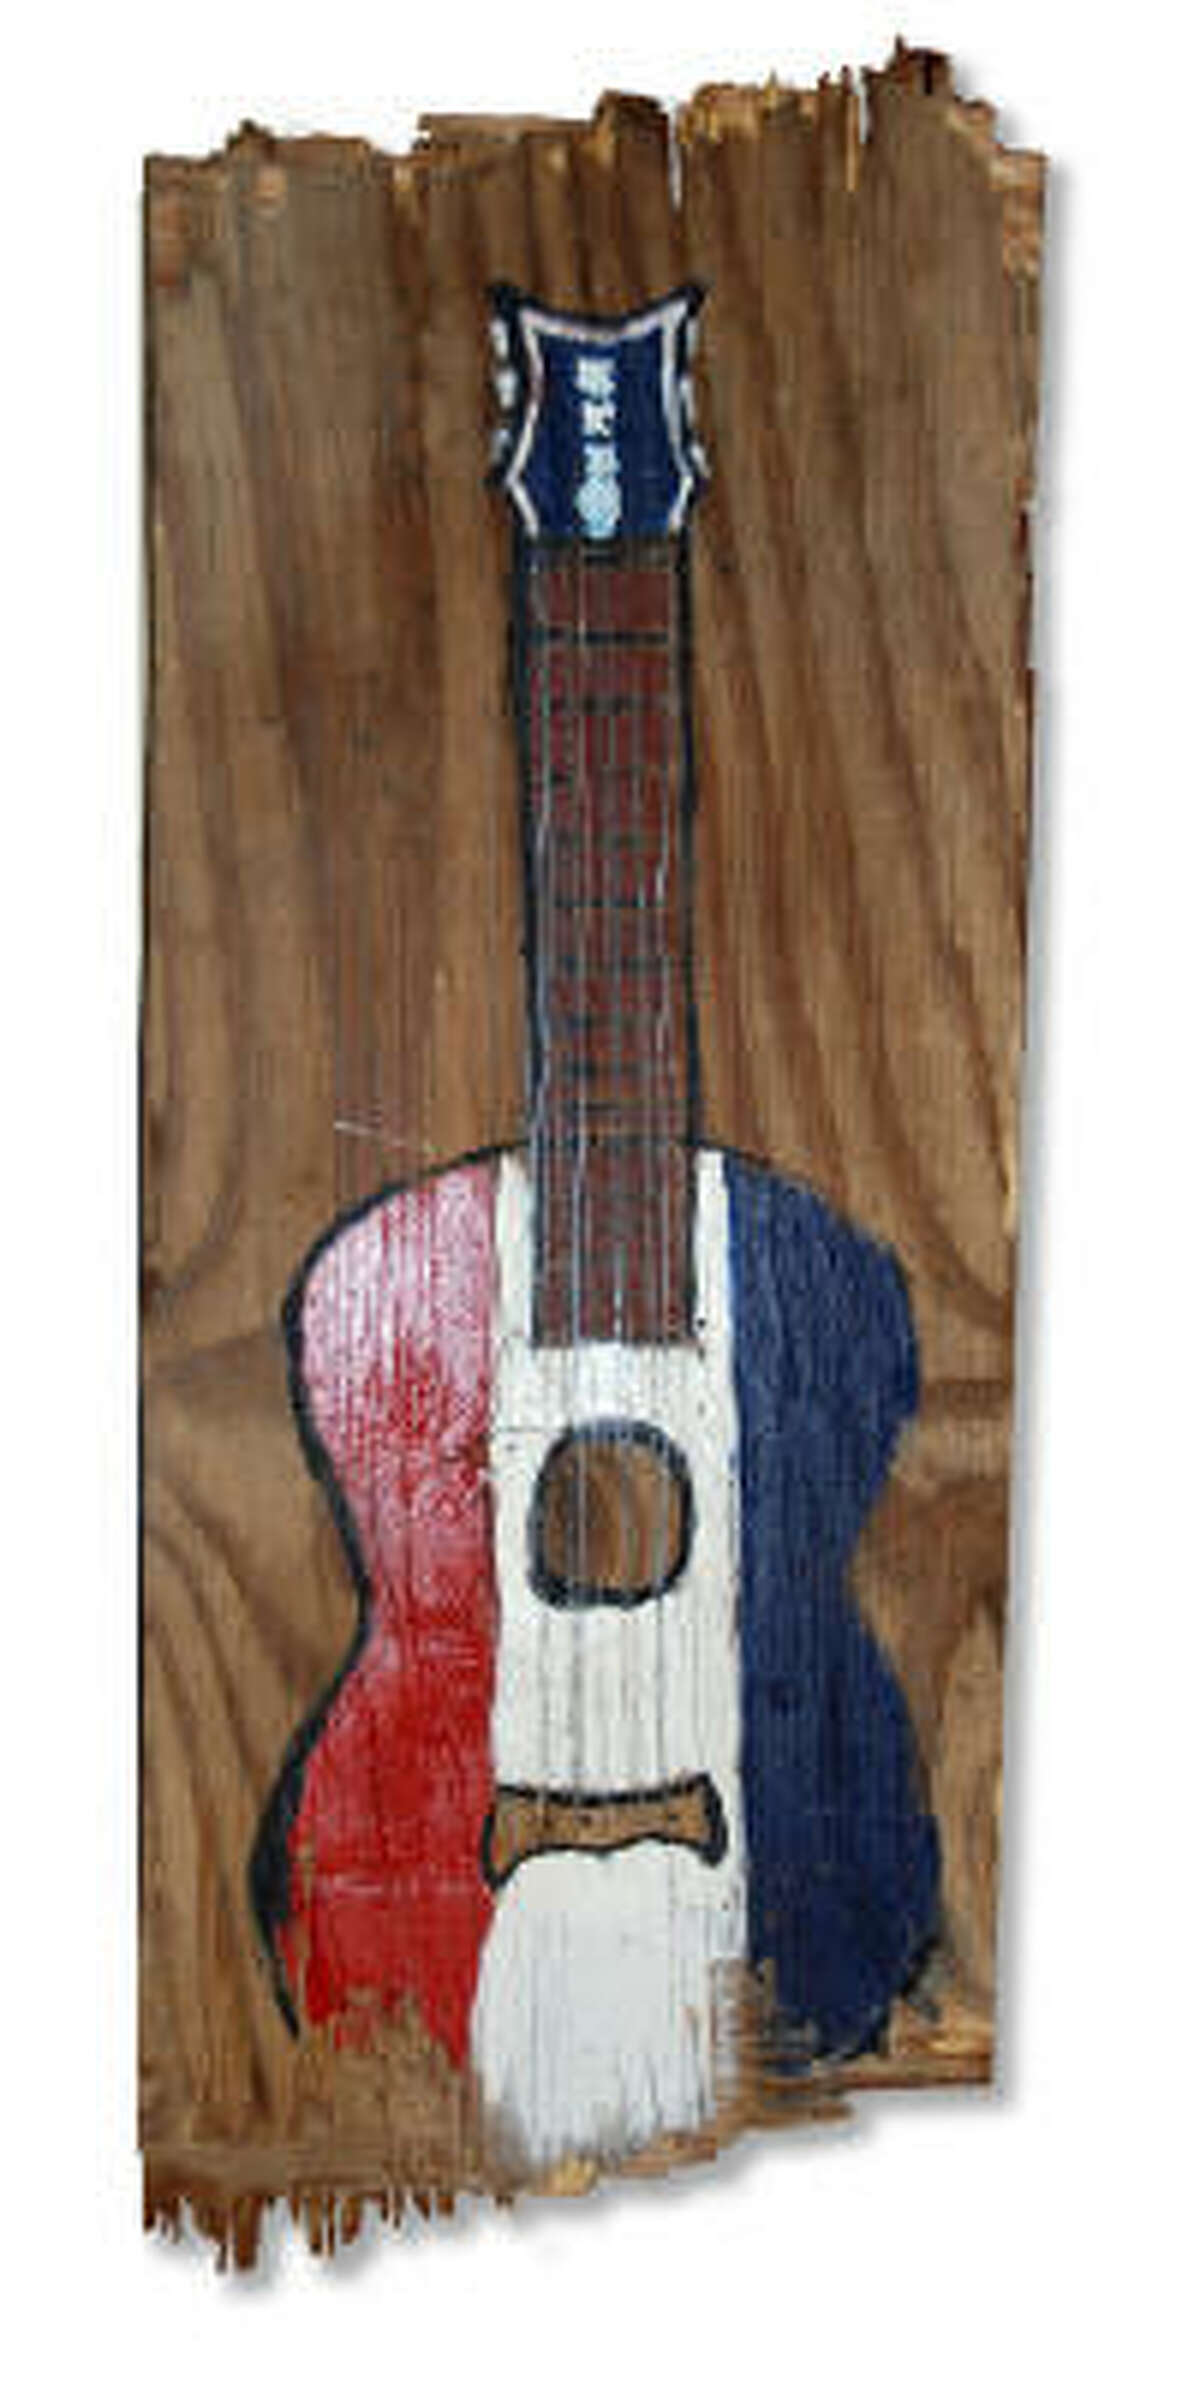 Buck Owens guitar painting by singer-songwriter Tim Easton as part of his This Machine Kills Apathy series.